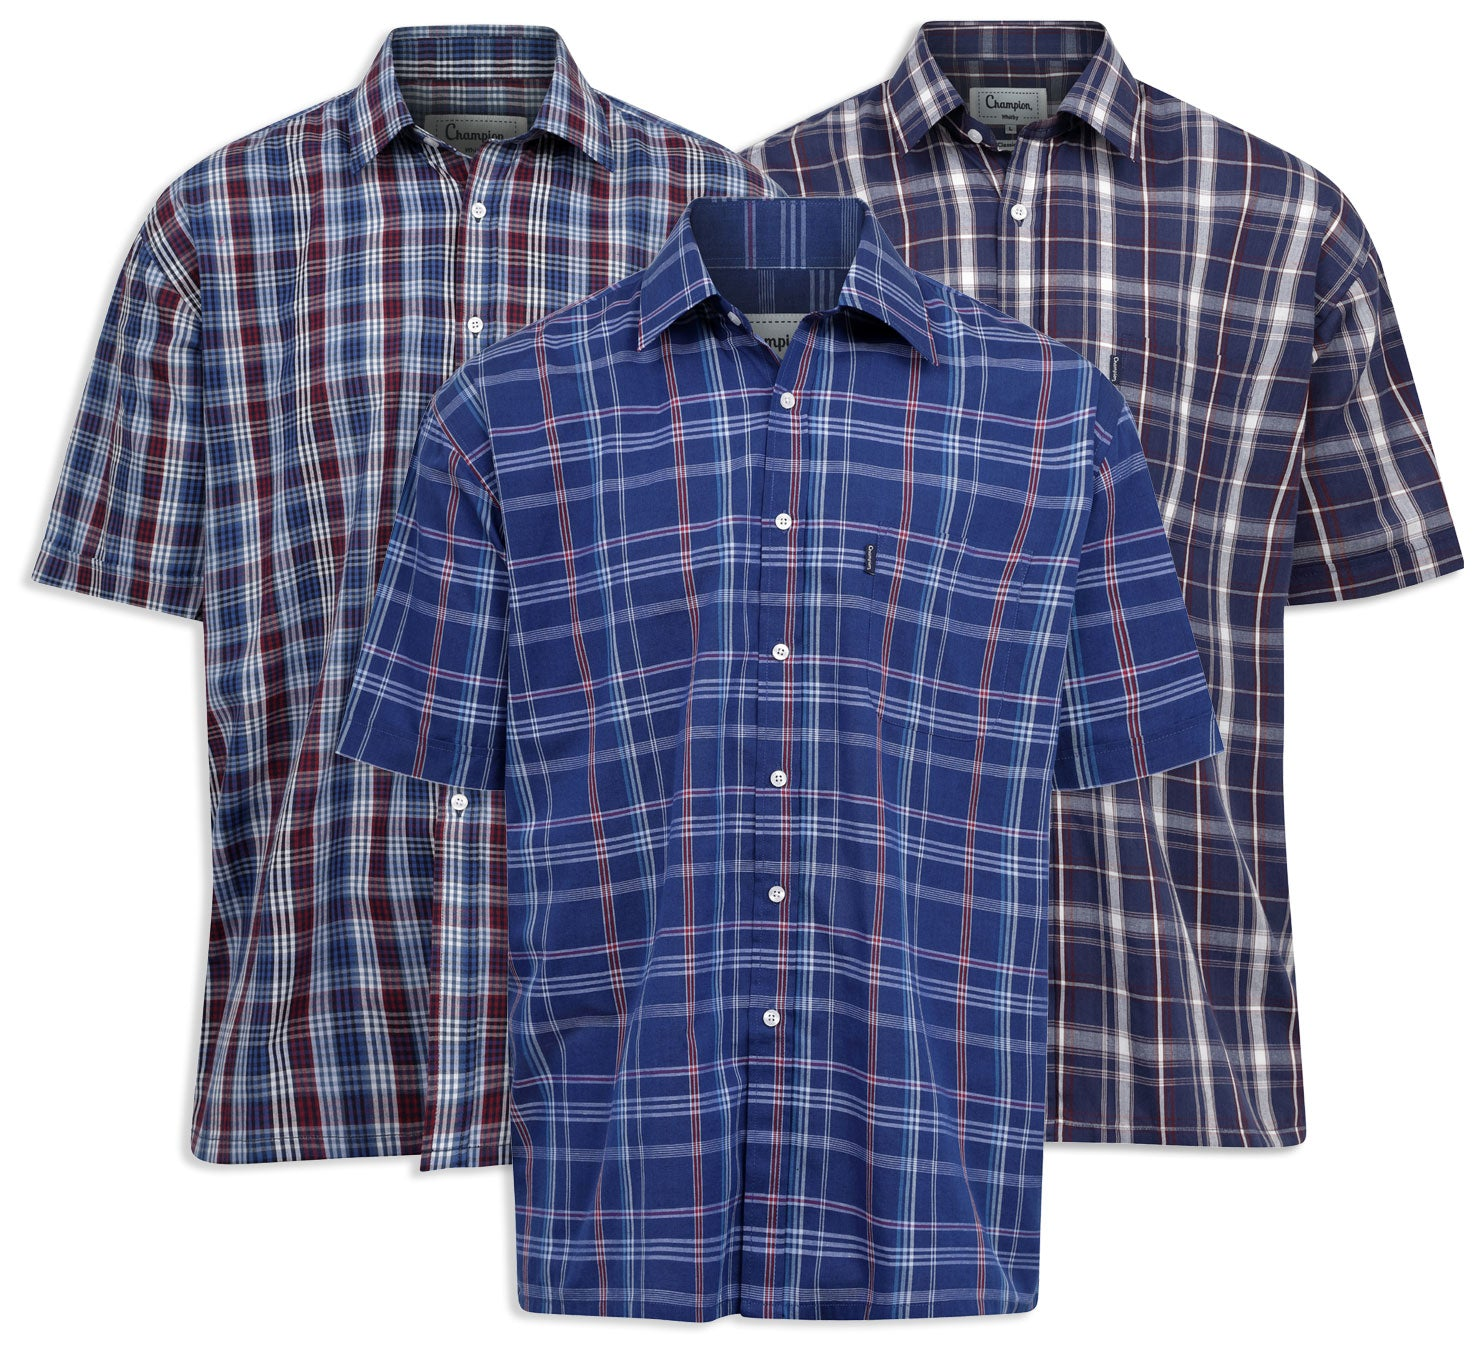 39da4f7b8ce65 Champion Whitby Cotton Short Sleeved Shirt in blue and navy check pattern